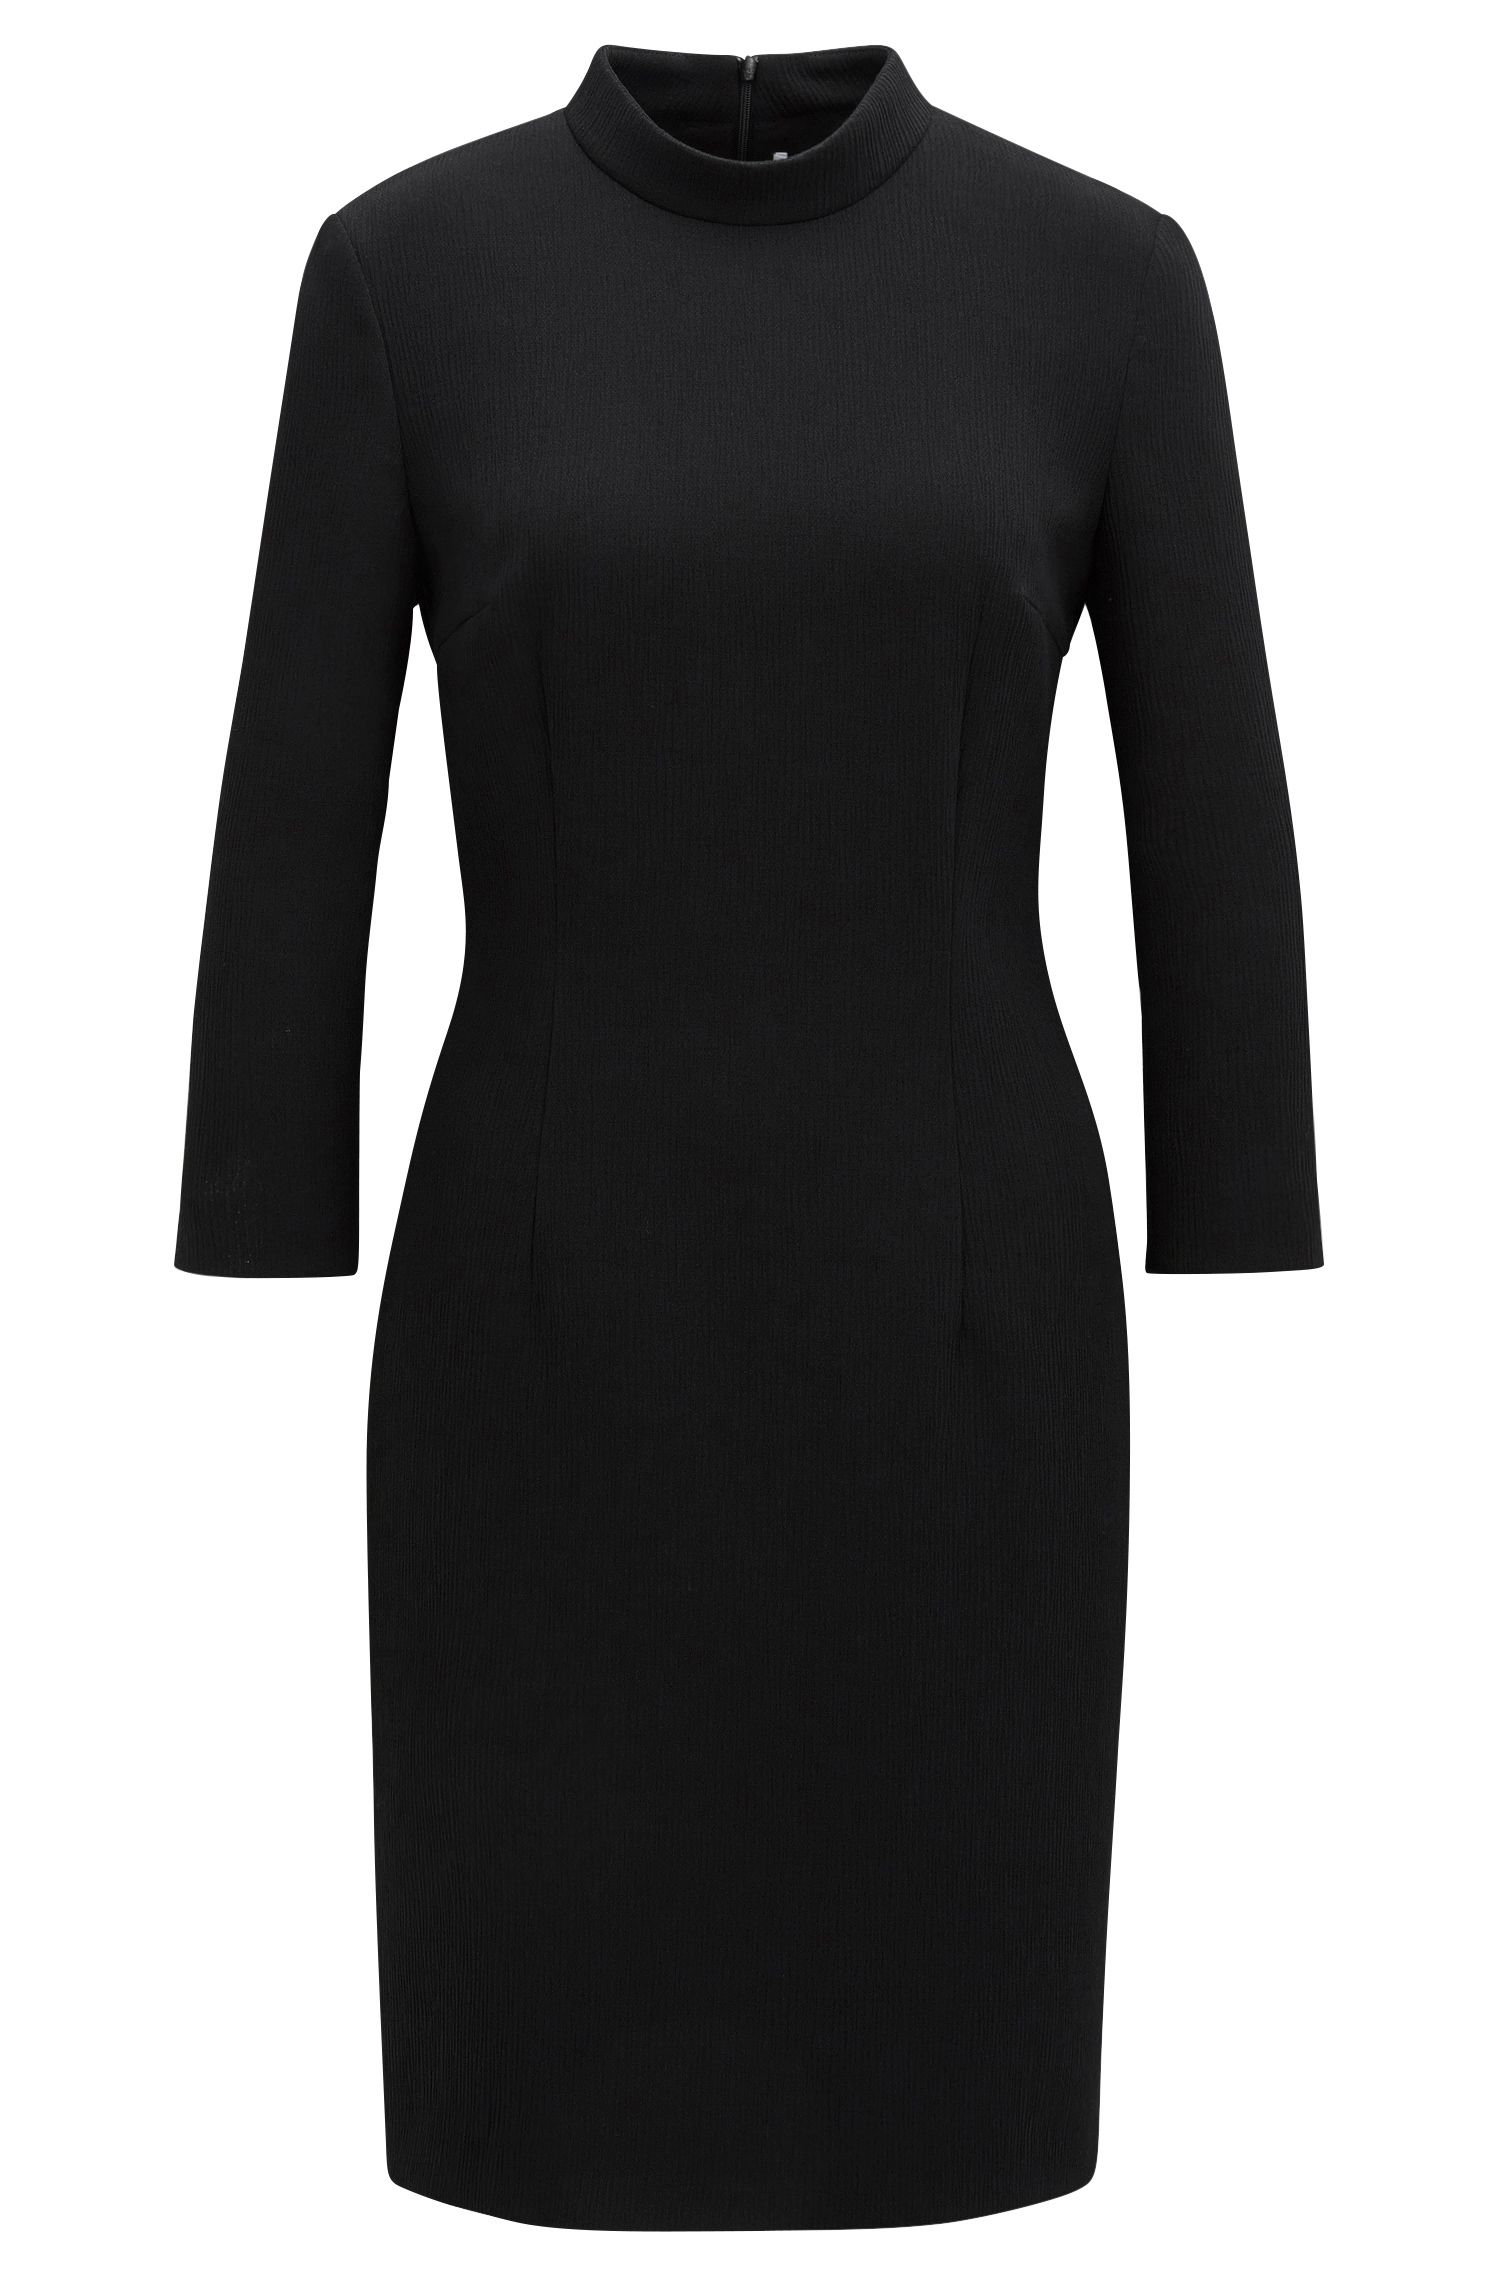 'Dadena' | Crepe Sheath Dress